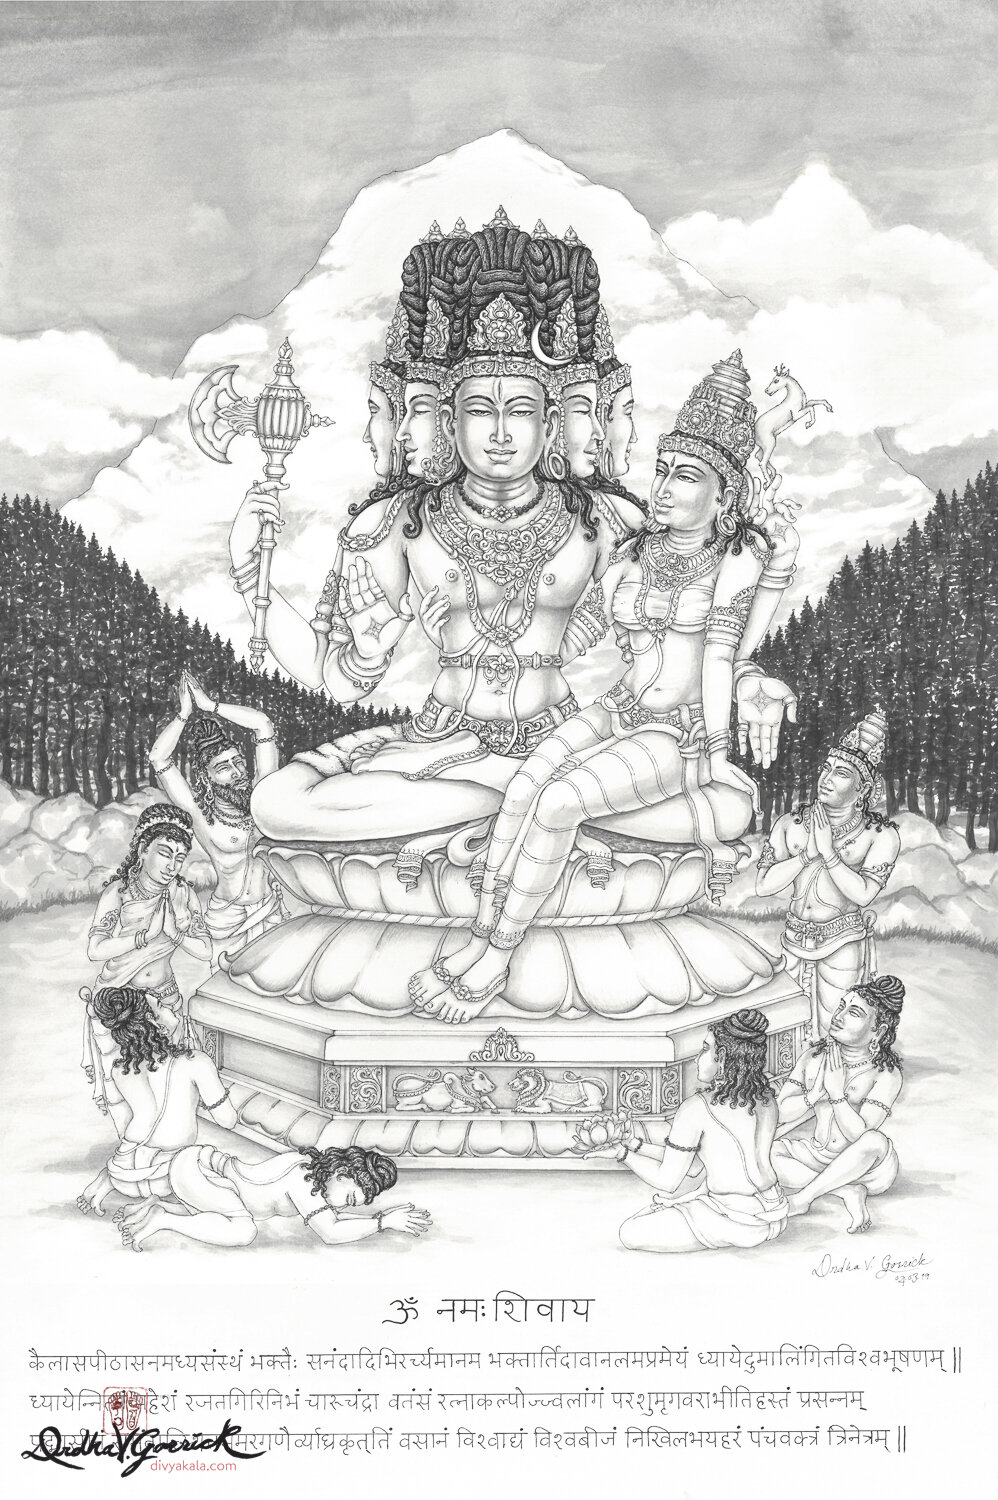 Panchamukha Shiva - 2019Pen, ink and pencil on paper58 x 45 cmThis work of Panchamukha Shiva is based on a dhyana shloka (meditative verse) from the Shiva Purana and was completed on the auspicious day of Maha Shivaratri.